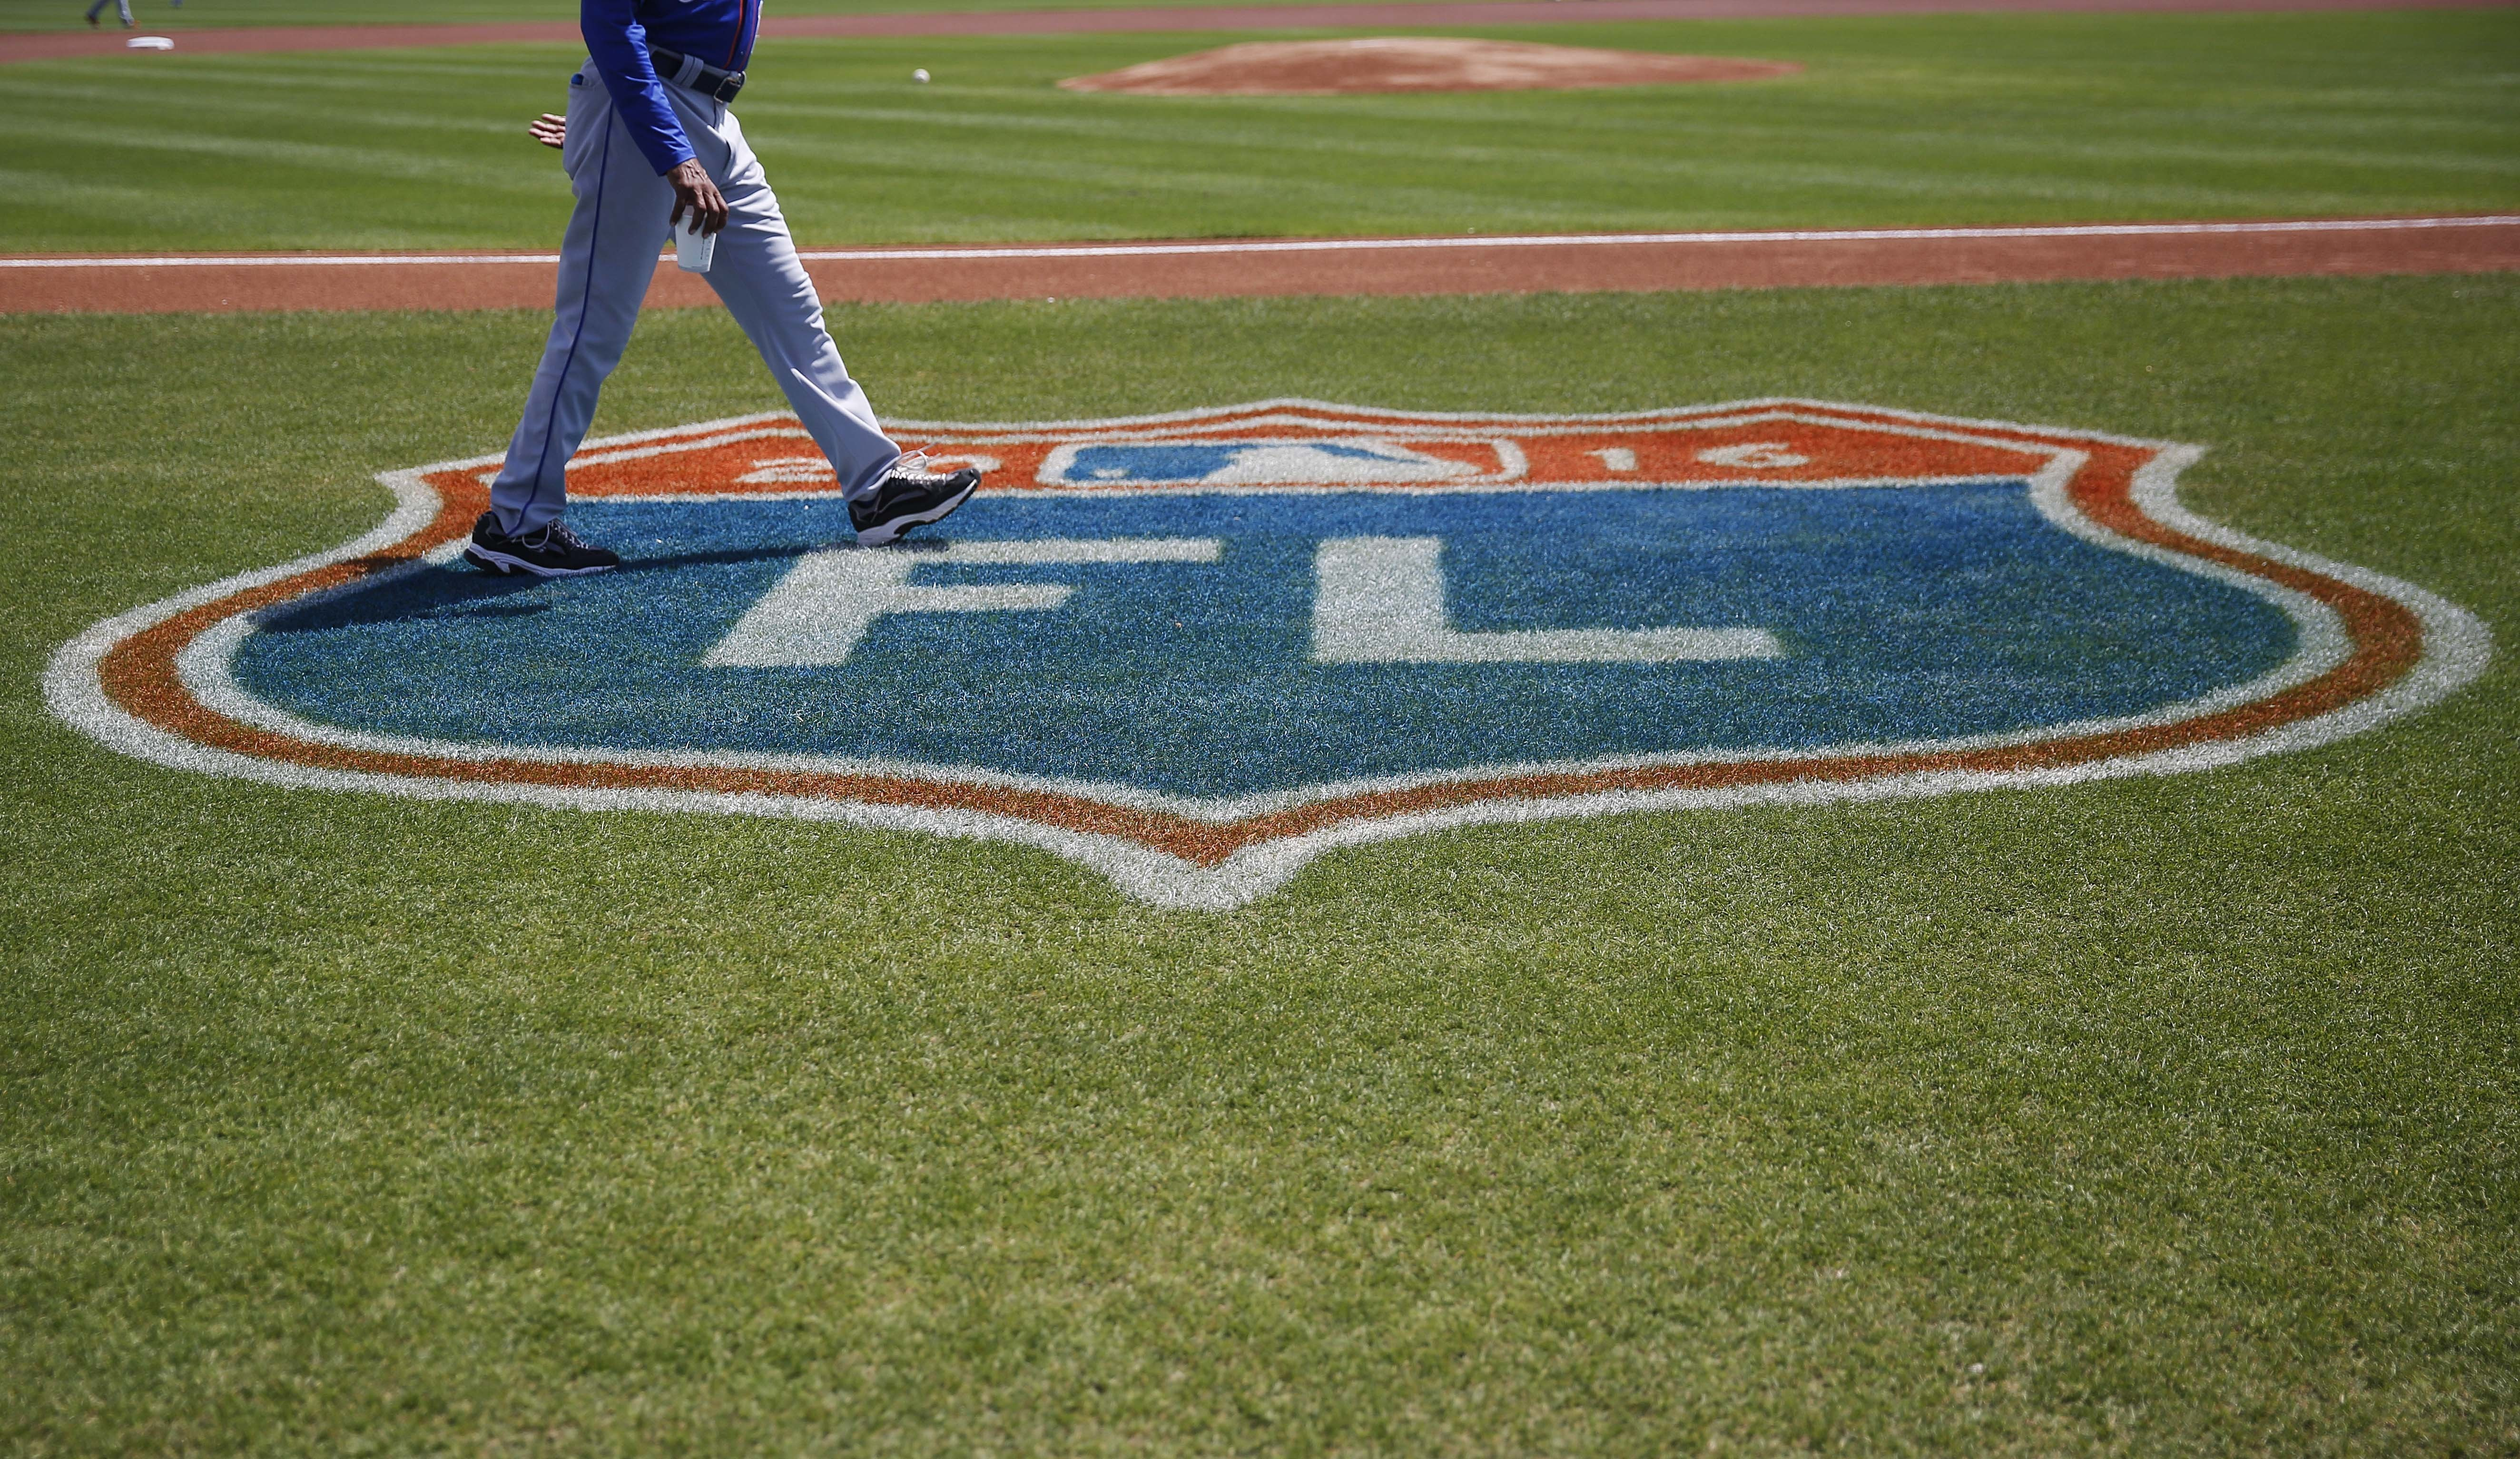 New York Mets first base coach Tom Goodwin walks onto the baseball field before an exhibition spring training baseball game against the Miami Marlins, Tuesday, March 15, 2016, in Jupiter, Fla. (AP Photo/Brynn Anderson)